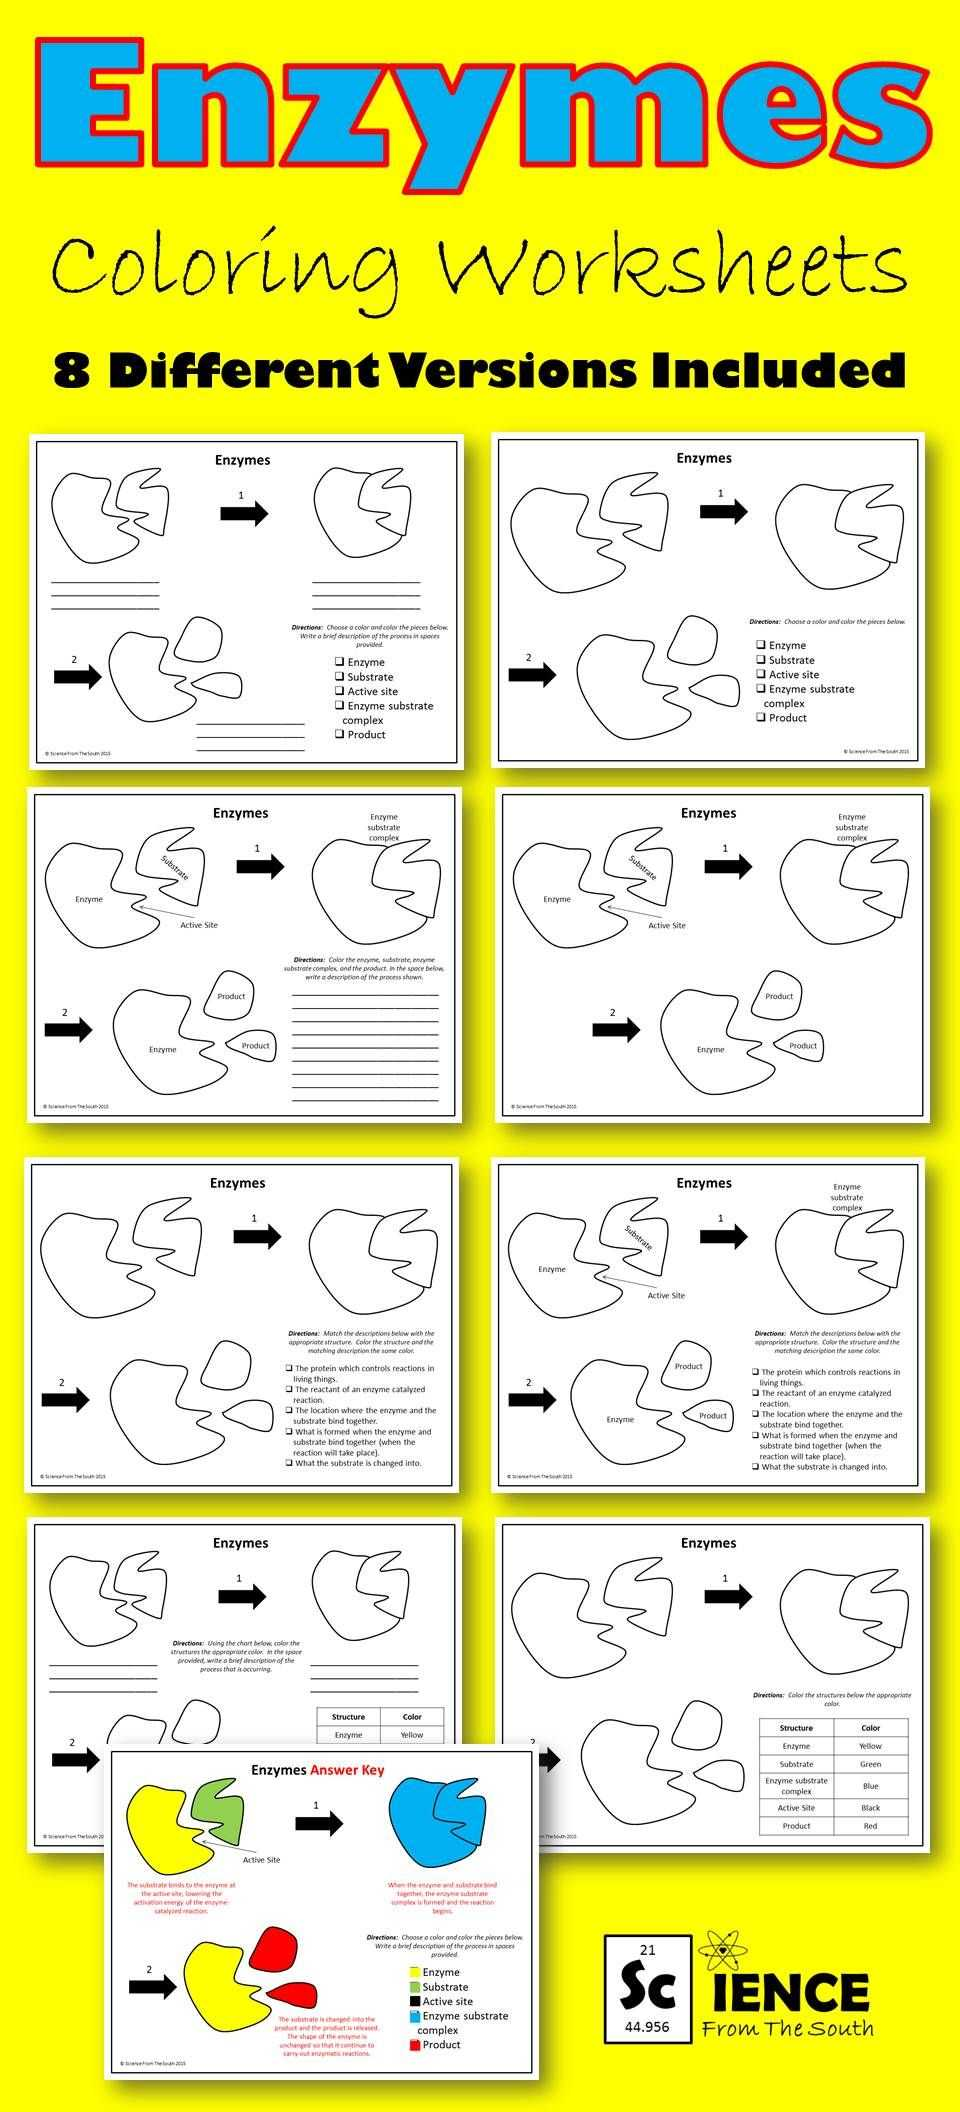 Amoeba Sisters Video Recap Biomolecules Worksheet Answers Along with Amoeba Sisters Enzymes Worksheet Key